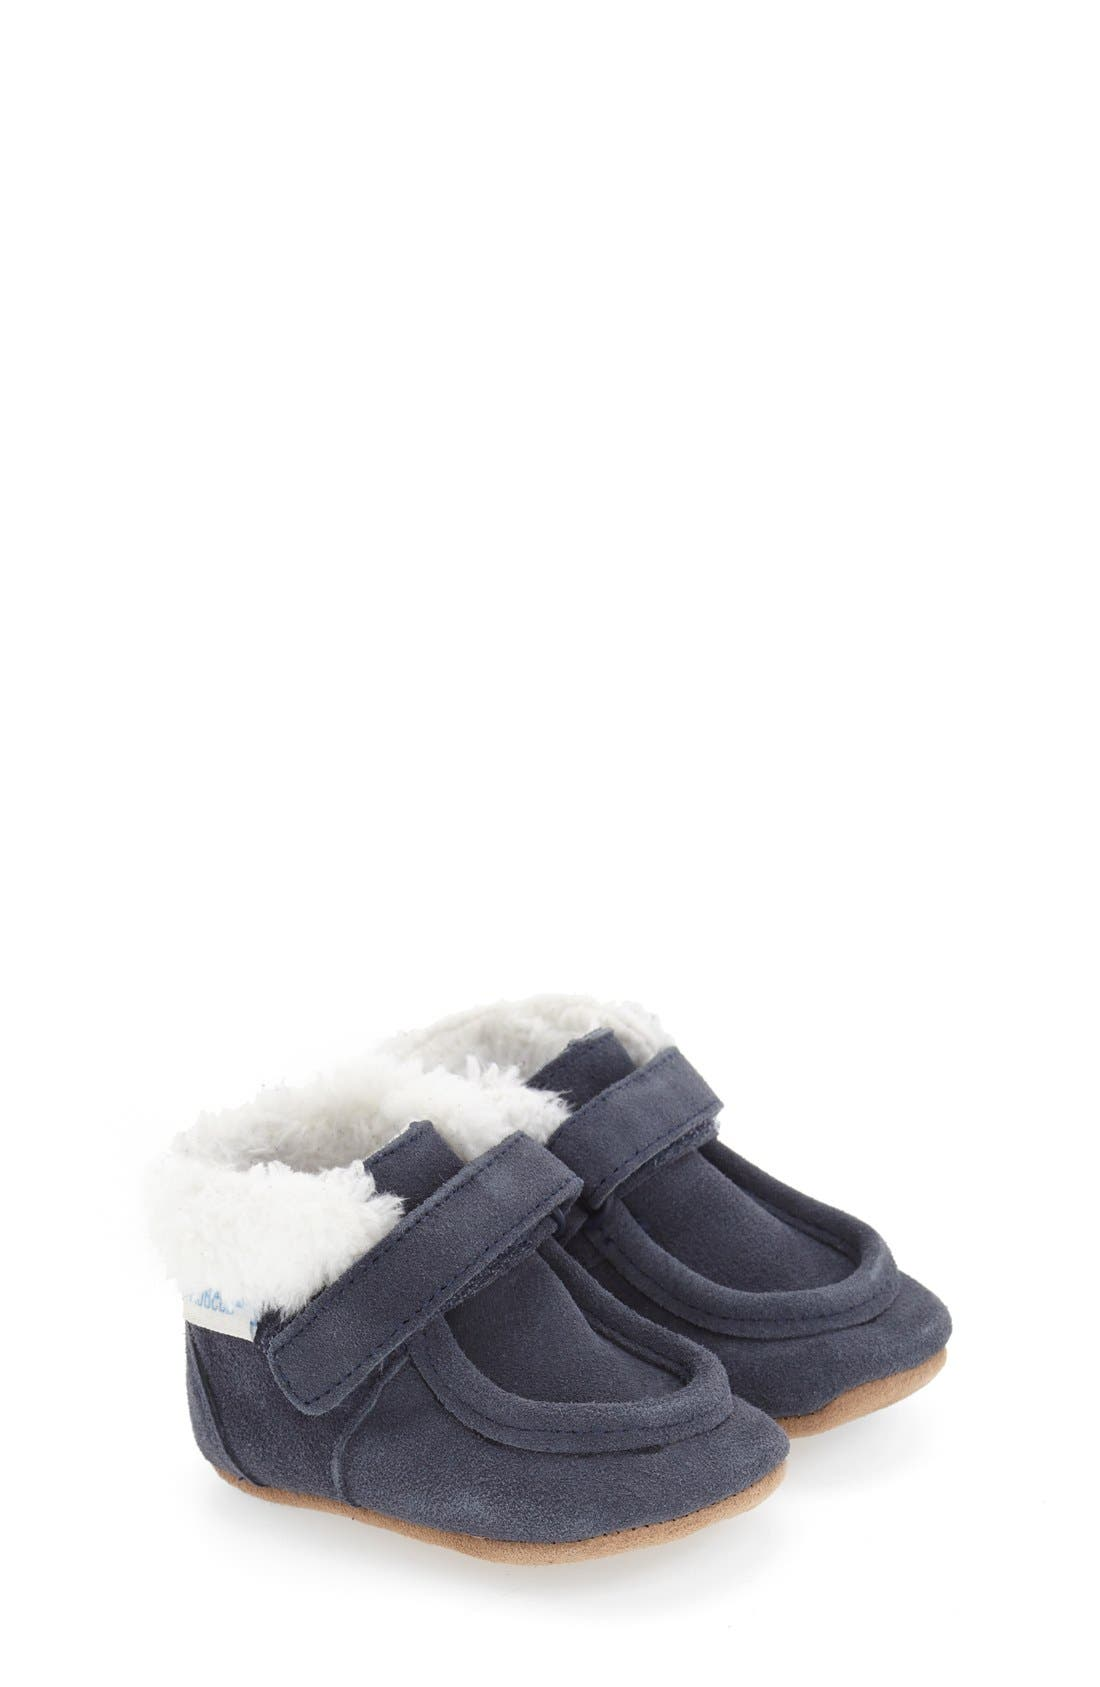 'Sawyer Snuggle' Crib Shoe,                         Main,                         color, Navy Leather